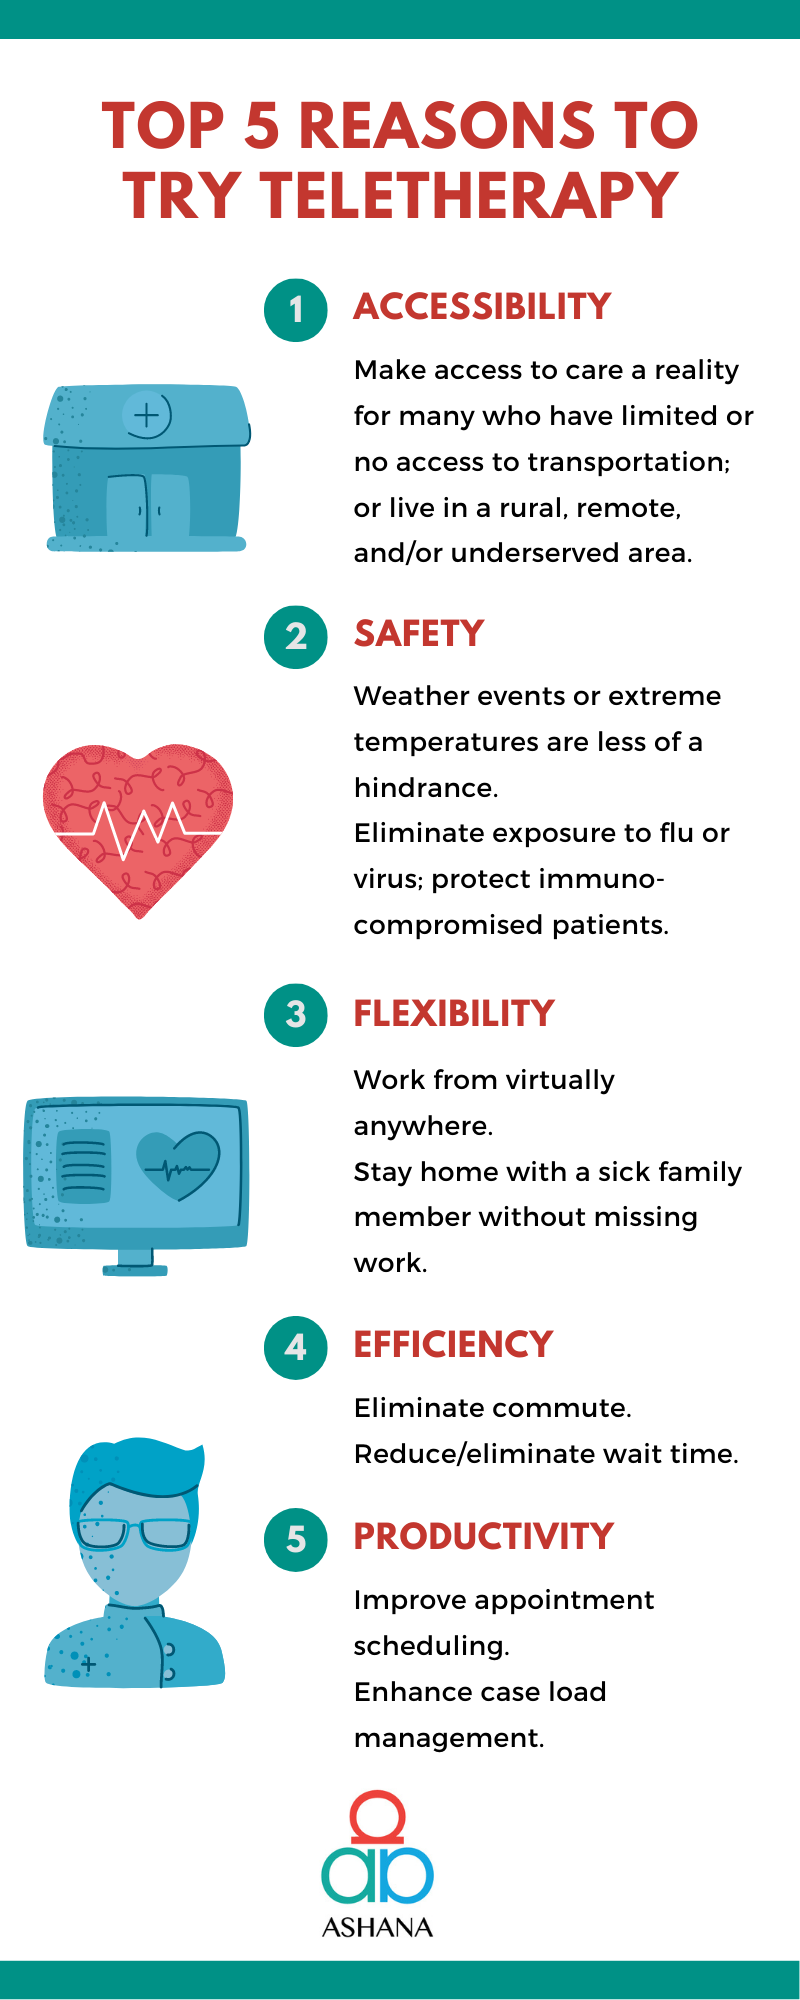 Top 5 Reasons To Try Teletherapy #telehealth #teletherapy #covid19 #physicaltherapy #occupationaltherapy #remoteworklife